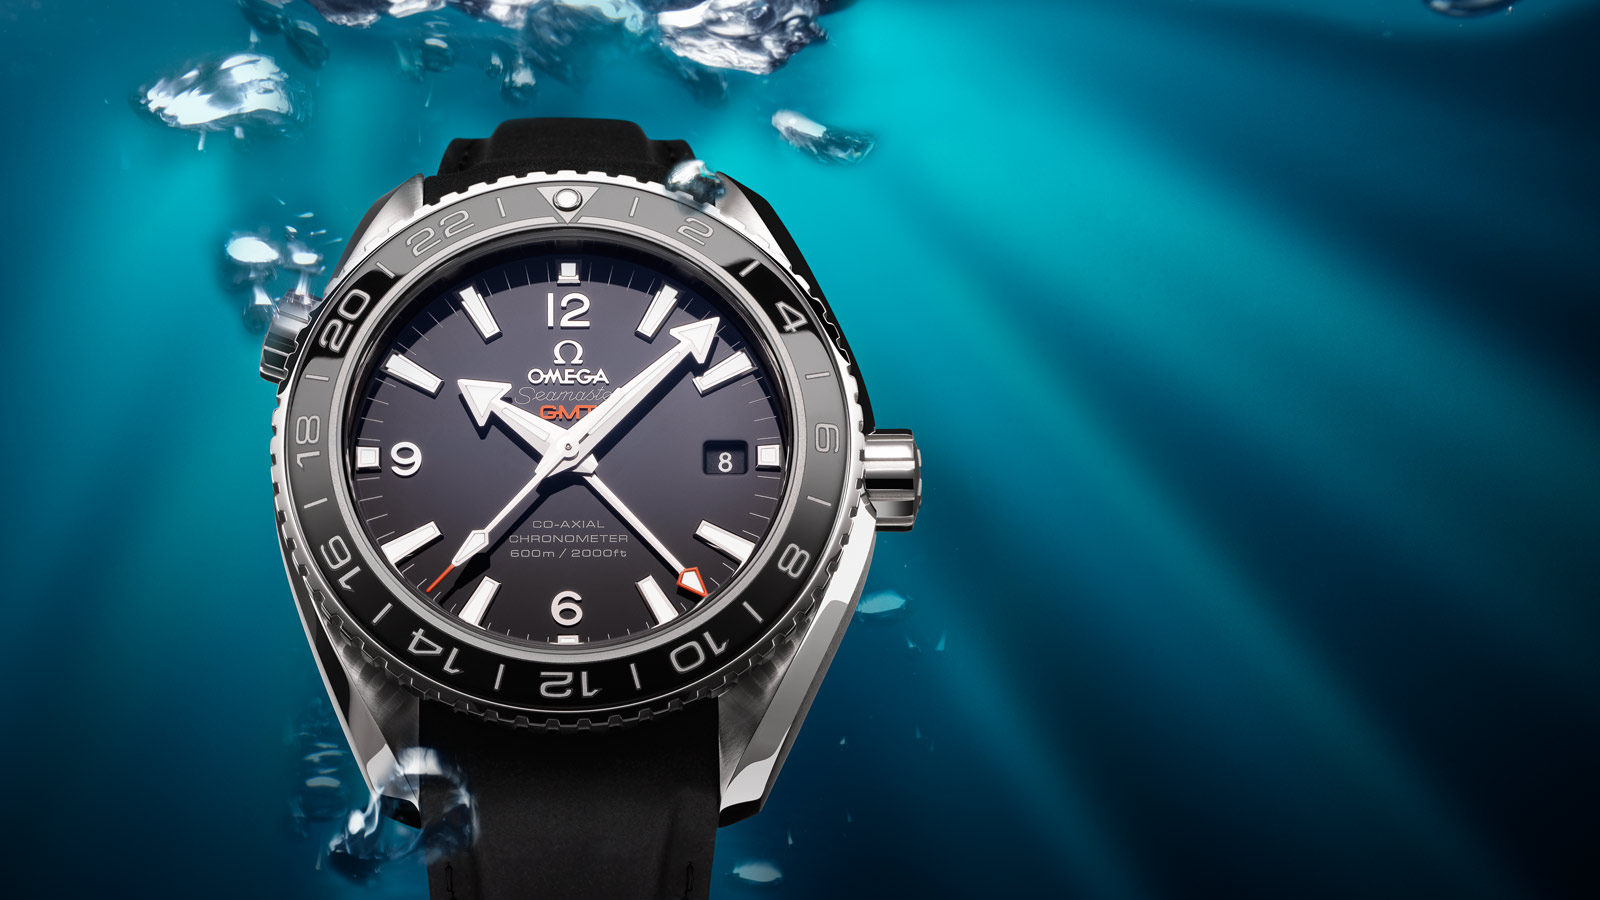 Seamaster プラネットオーシャン Planet Ocean 600M Omega Co‑axial GMT 43.5 mm - 232.32.44.22.01.001 - ビュー 1